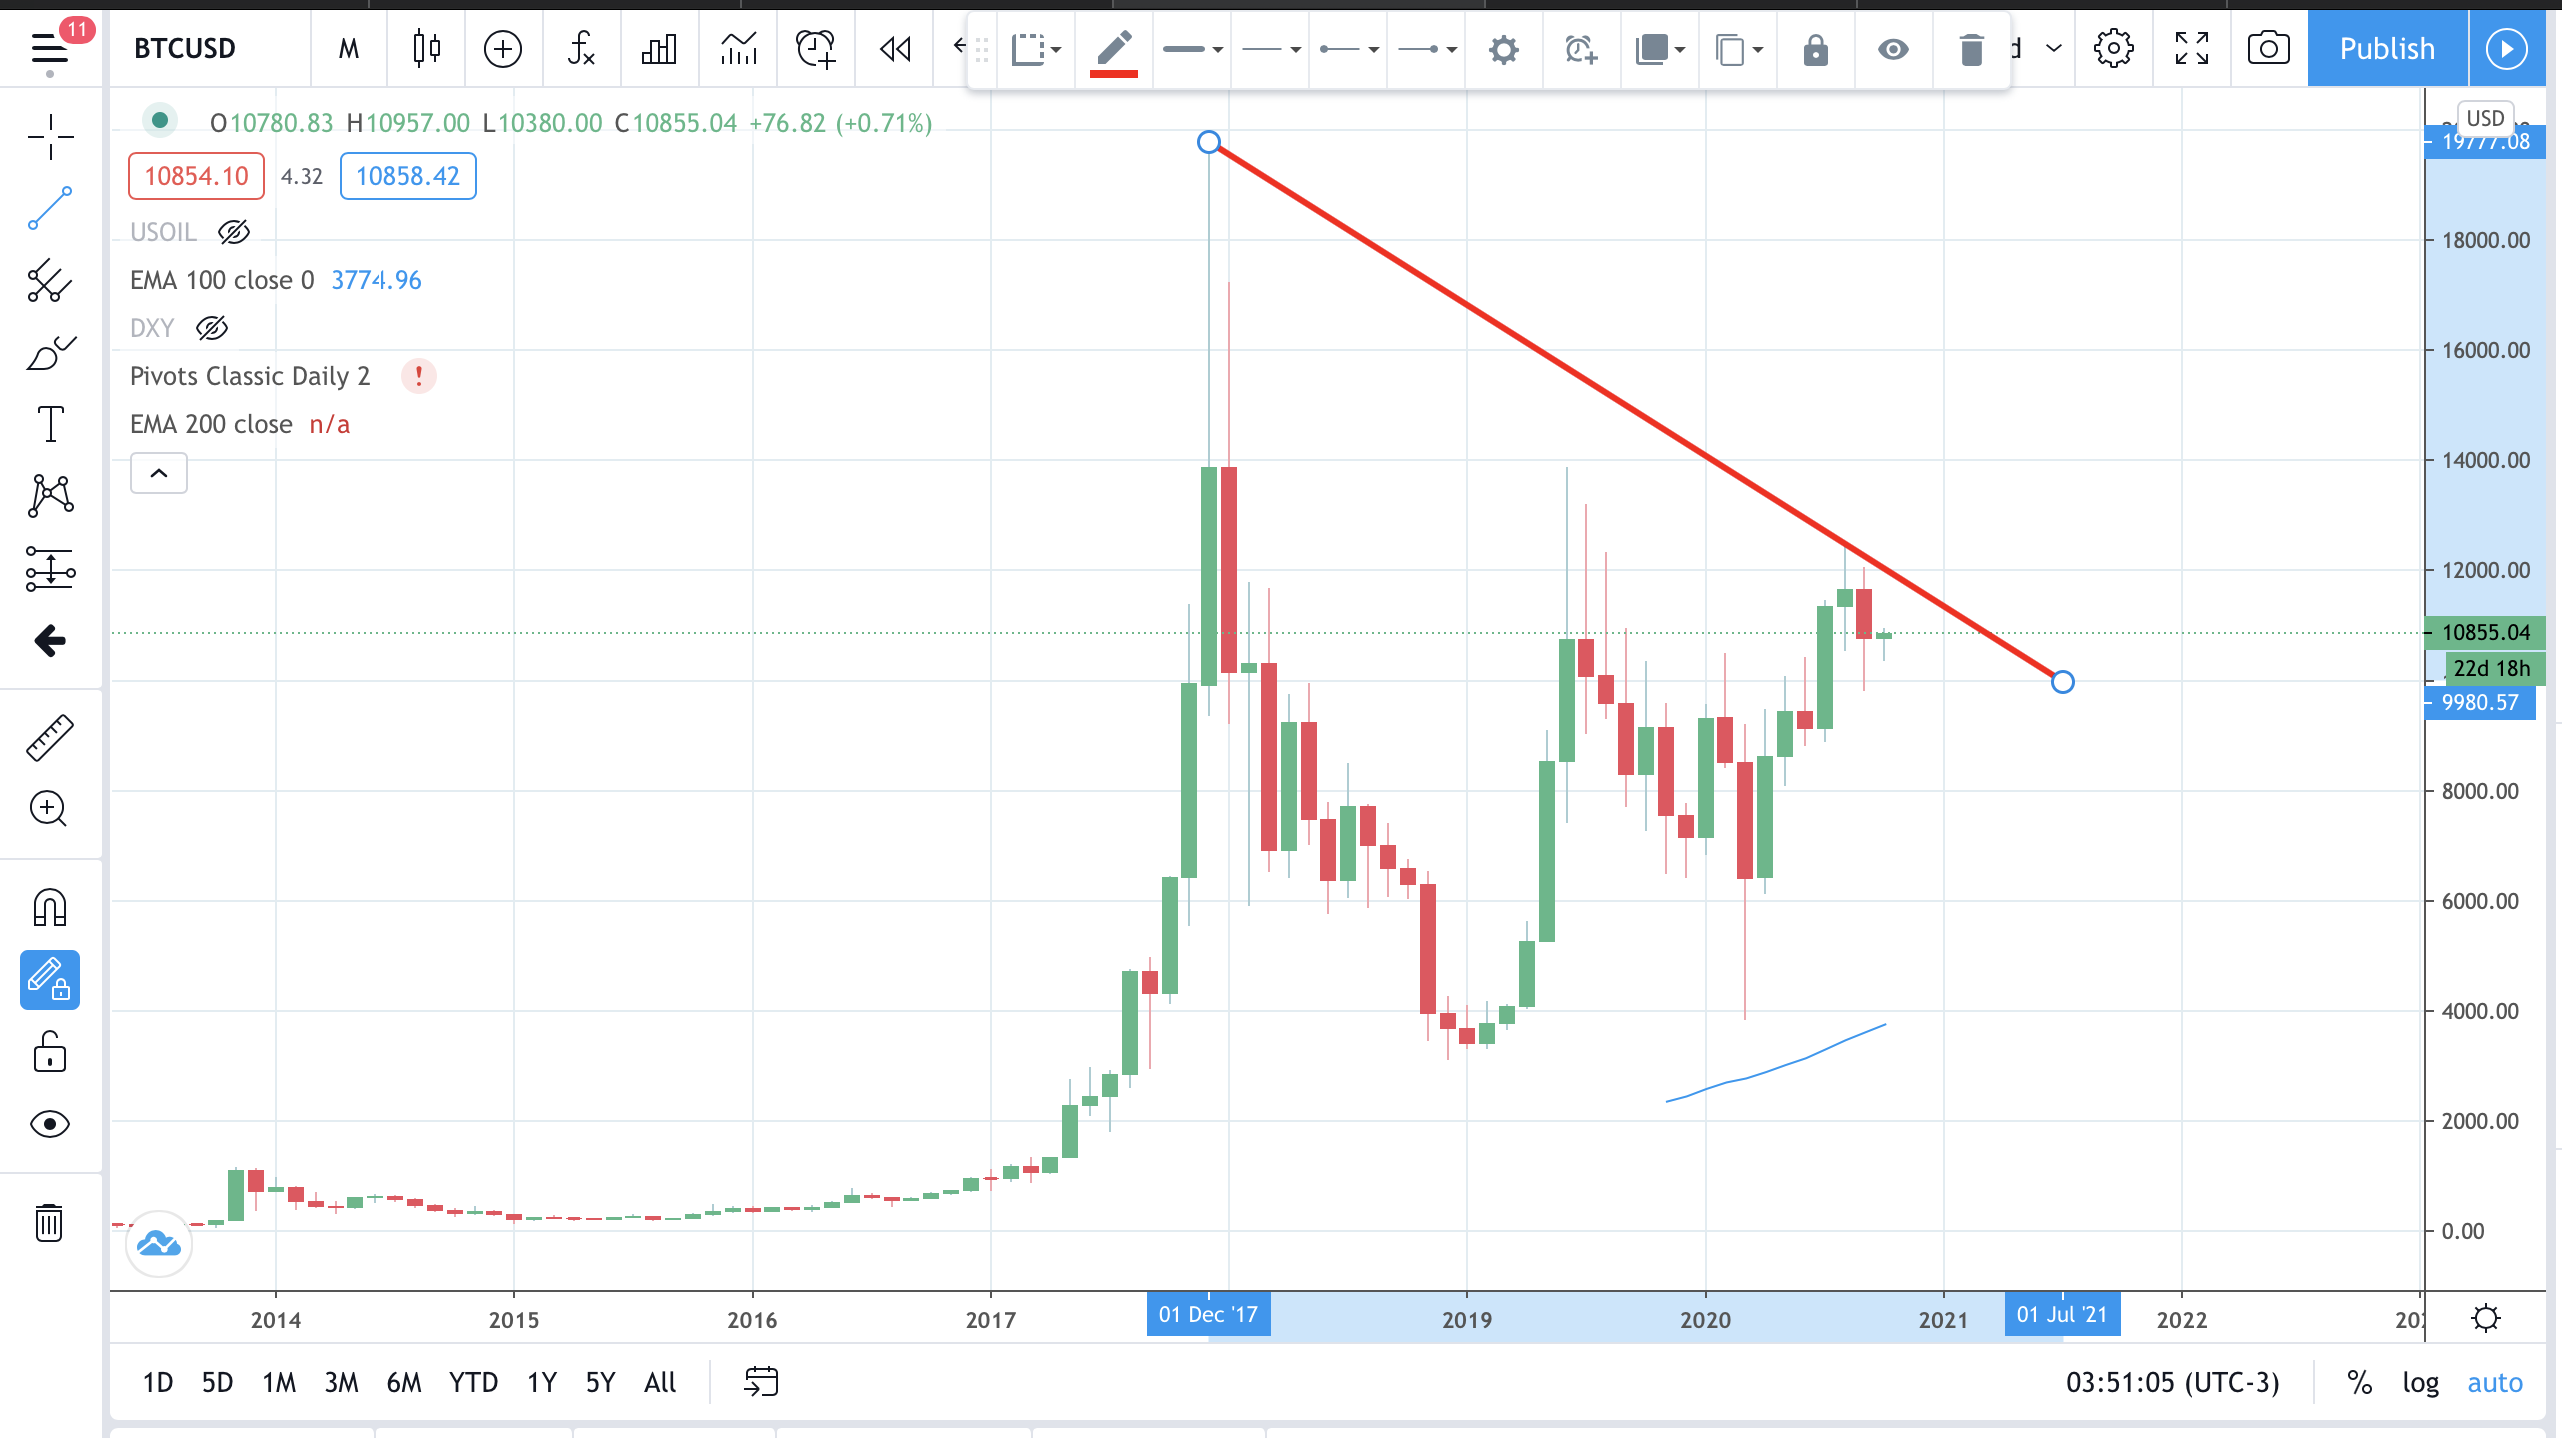 Will Bitcoin prices rise?